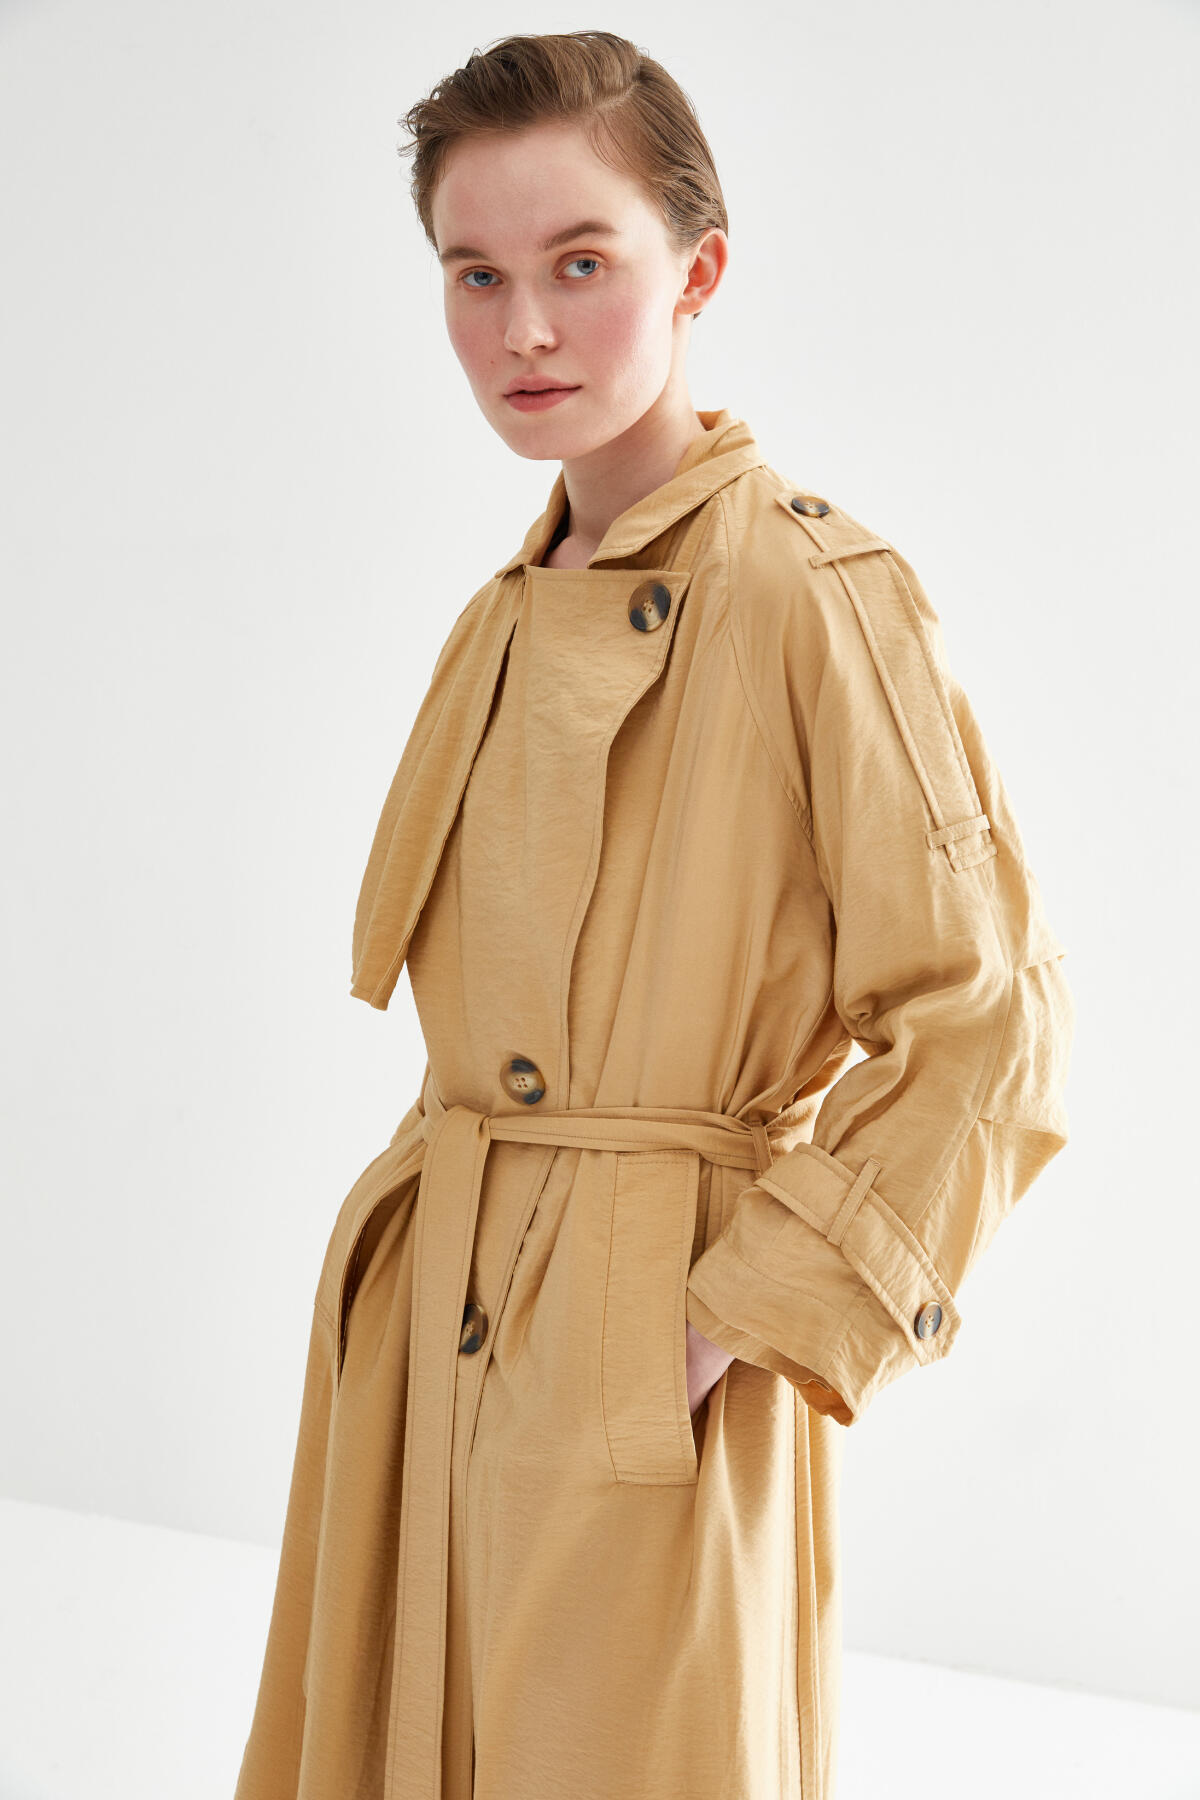 Kevser Sarıoğlu - OVERSIZED TRENCH COAT WITH PLEATED ARM